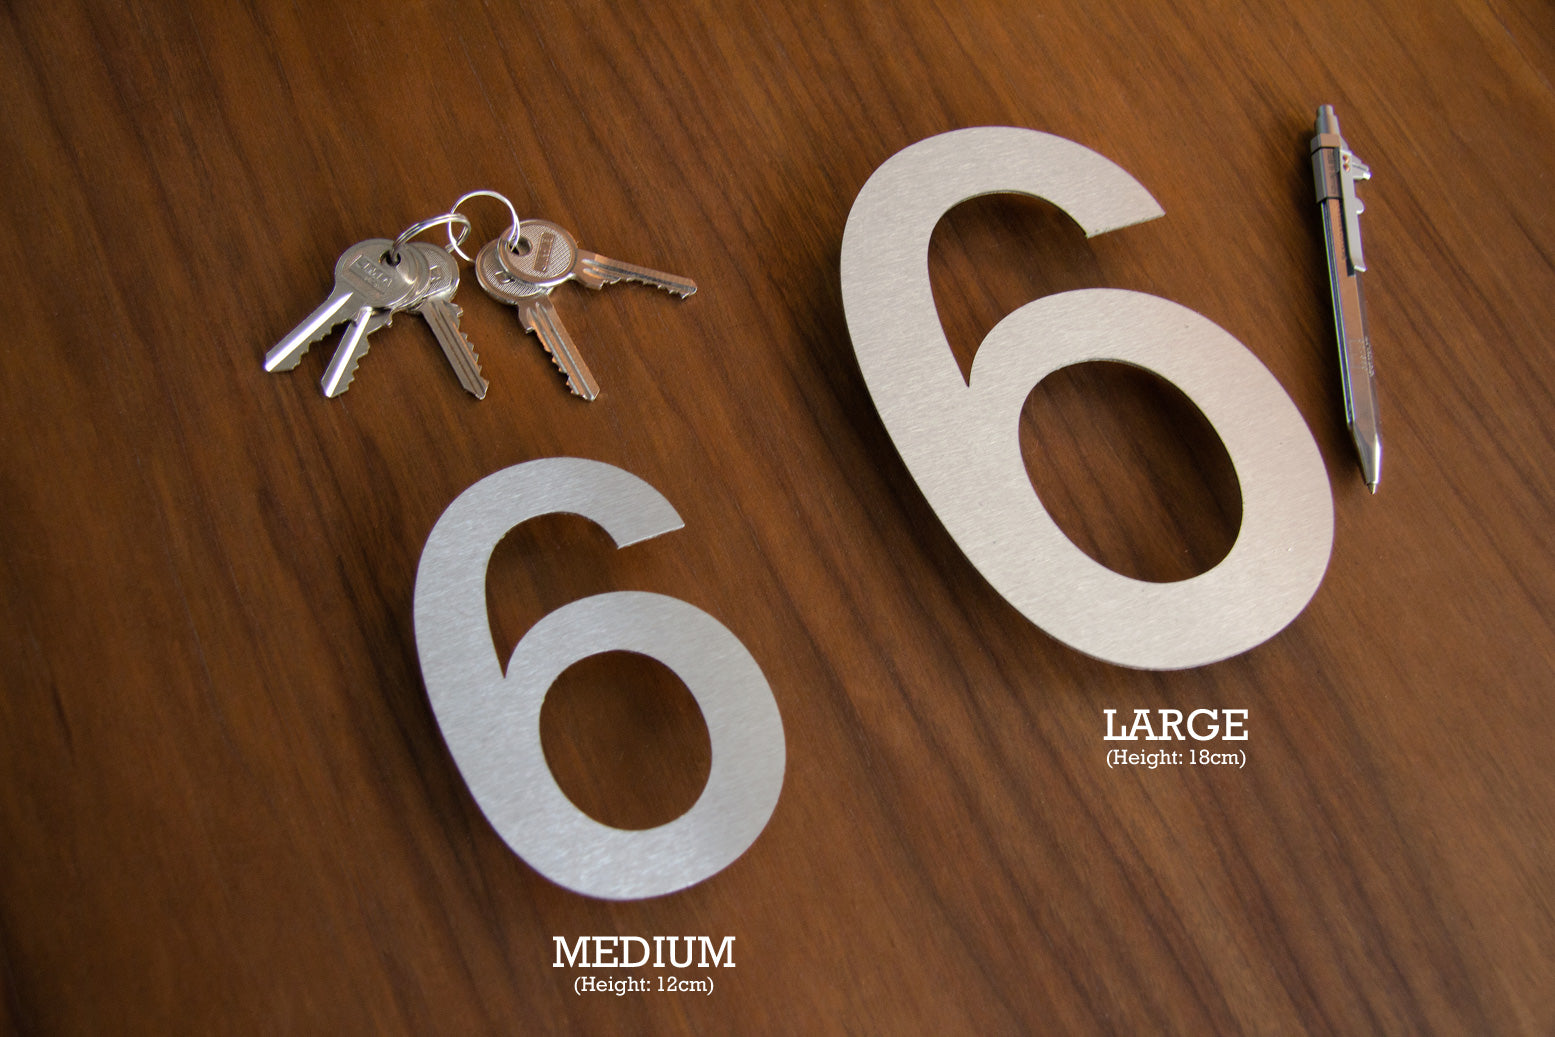 House Number Size Guide